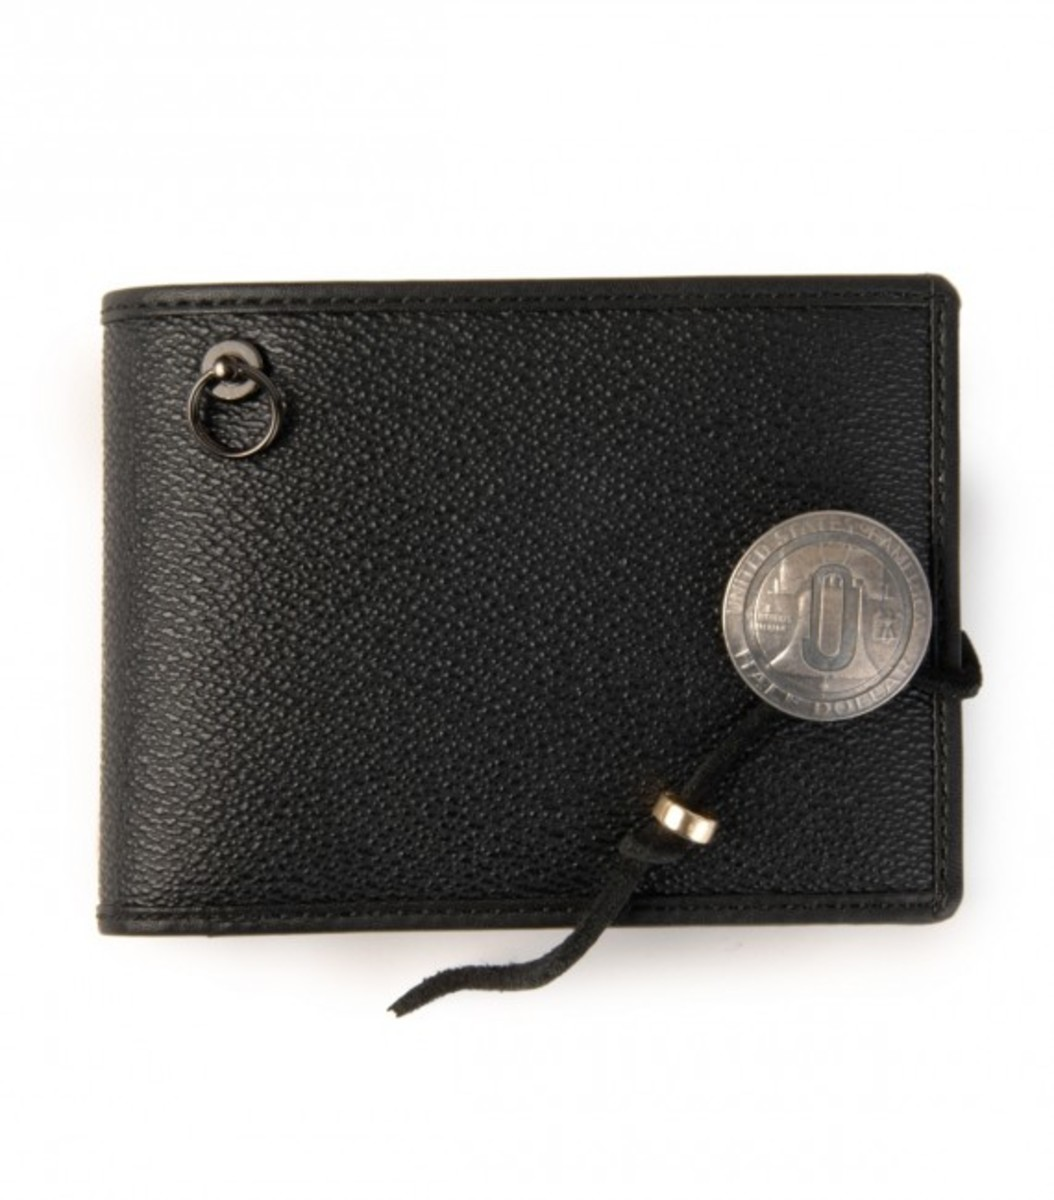 jam-home-made-wallet-02